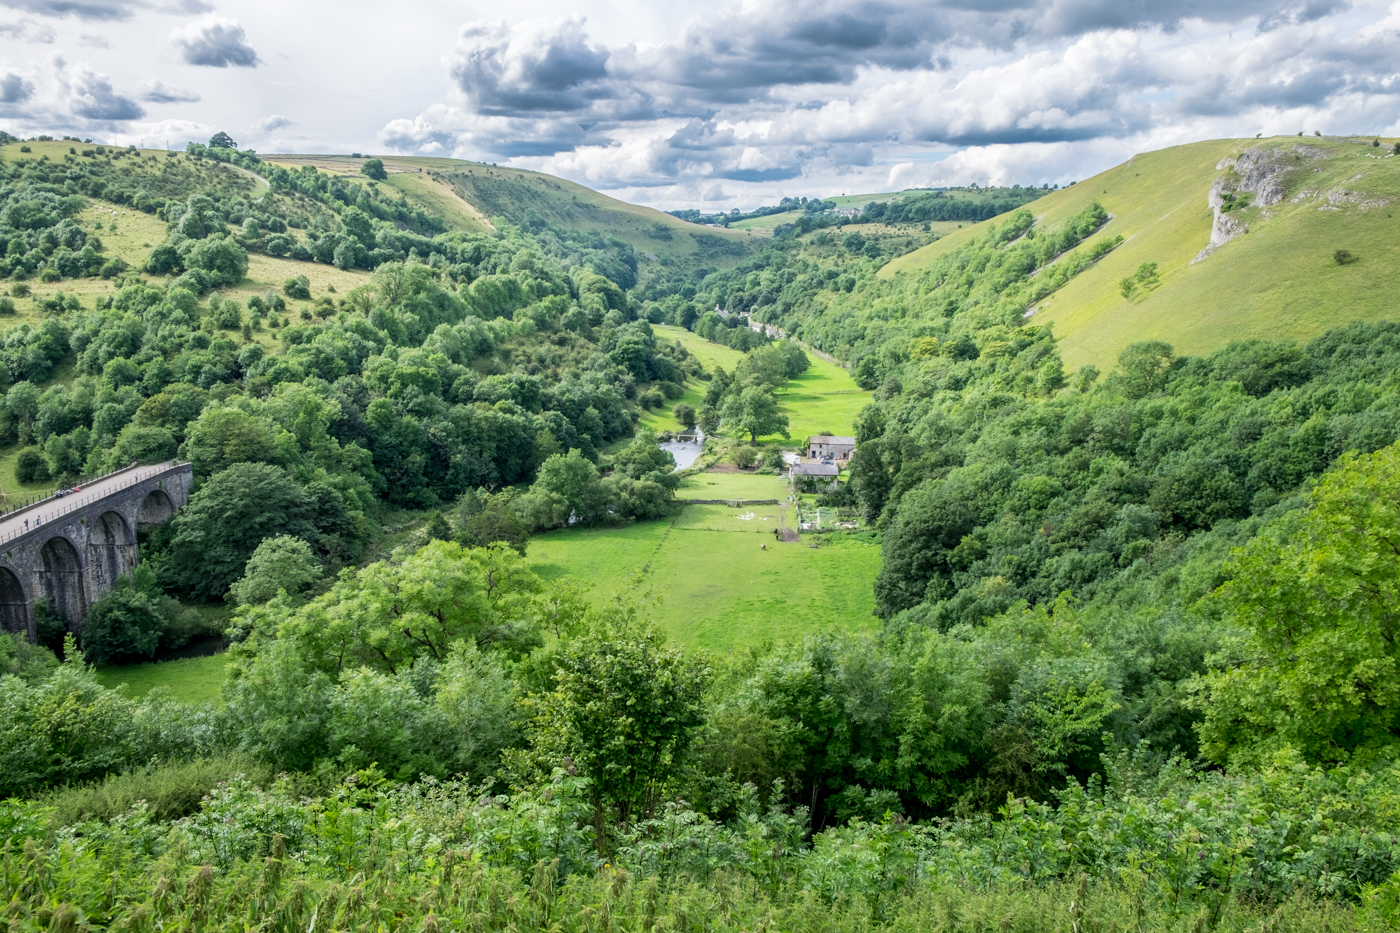 WYE VALLEY by Chris Reynolds